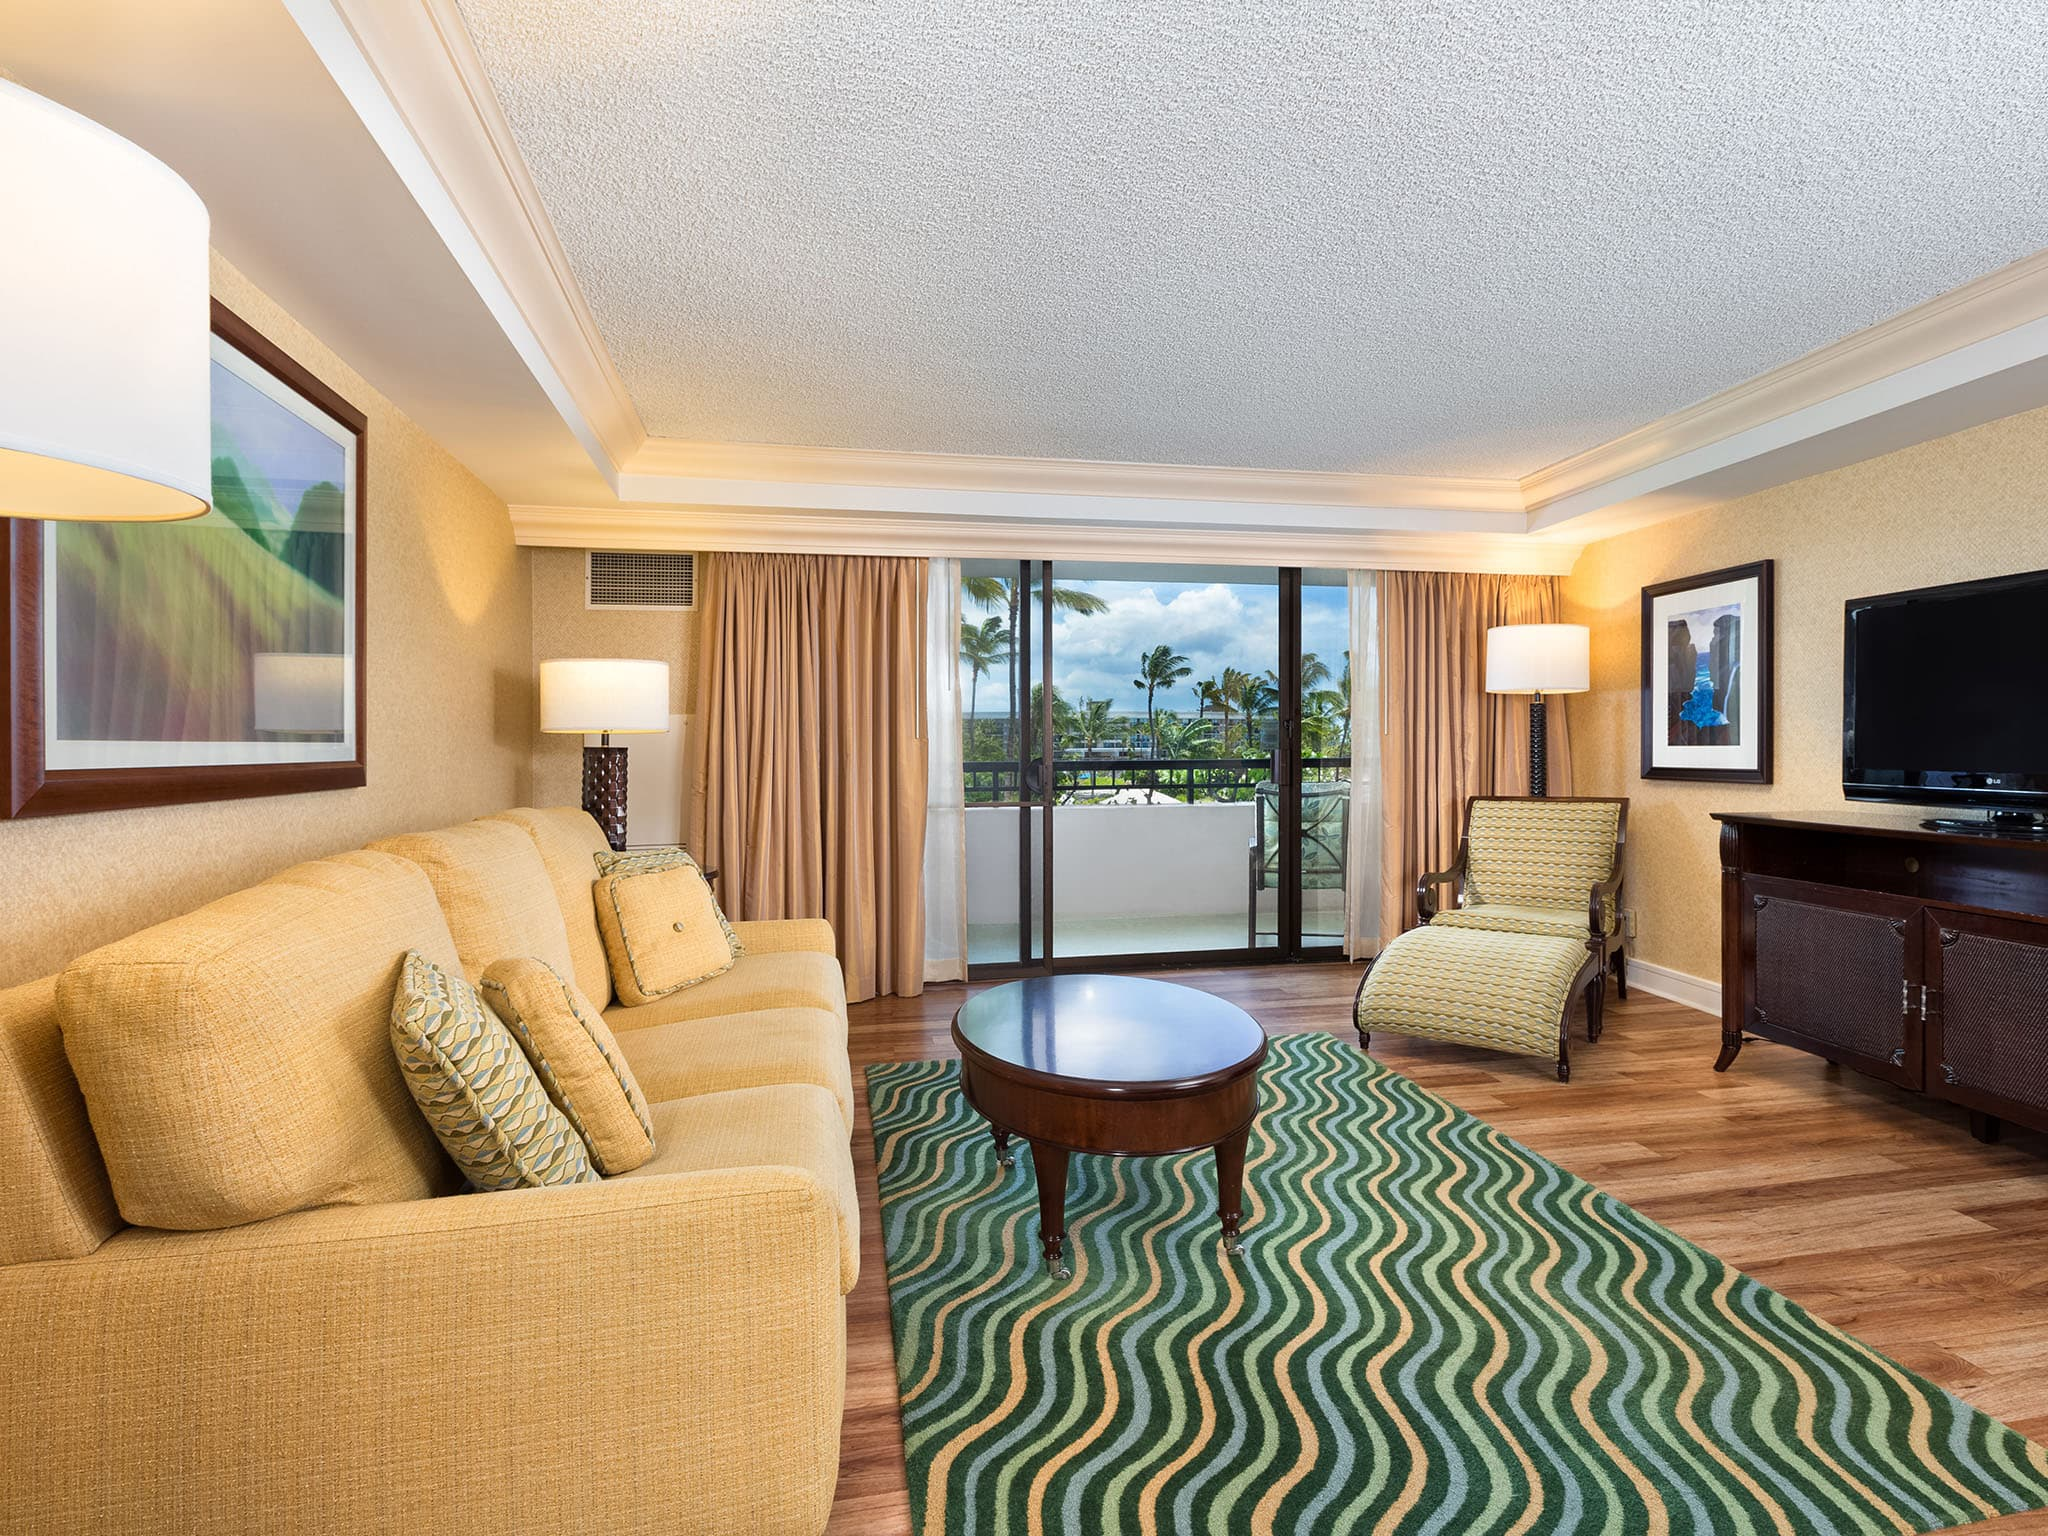 Rooms: Photos Of Rooms & Suites At Hilton Waikoloa Village